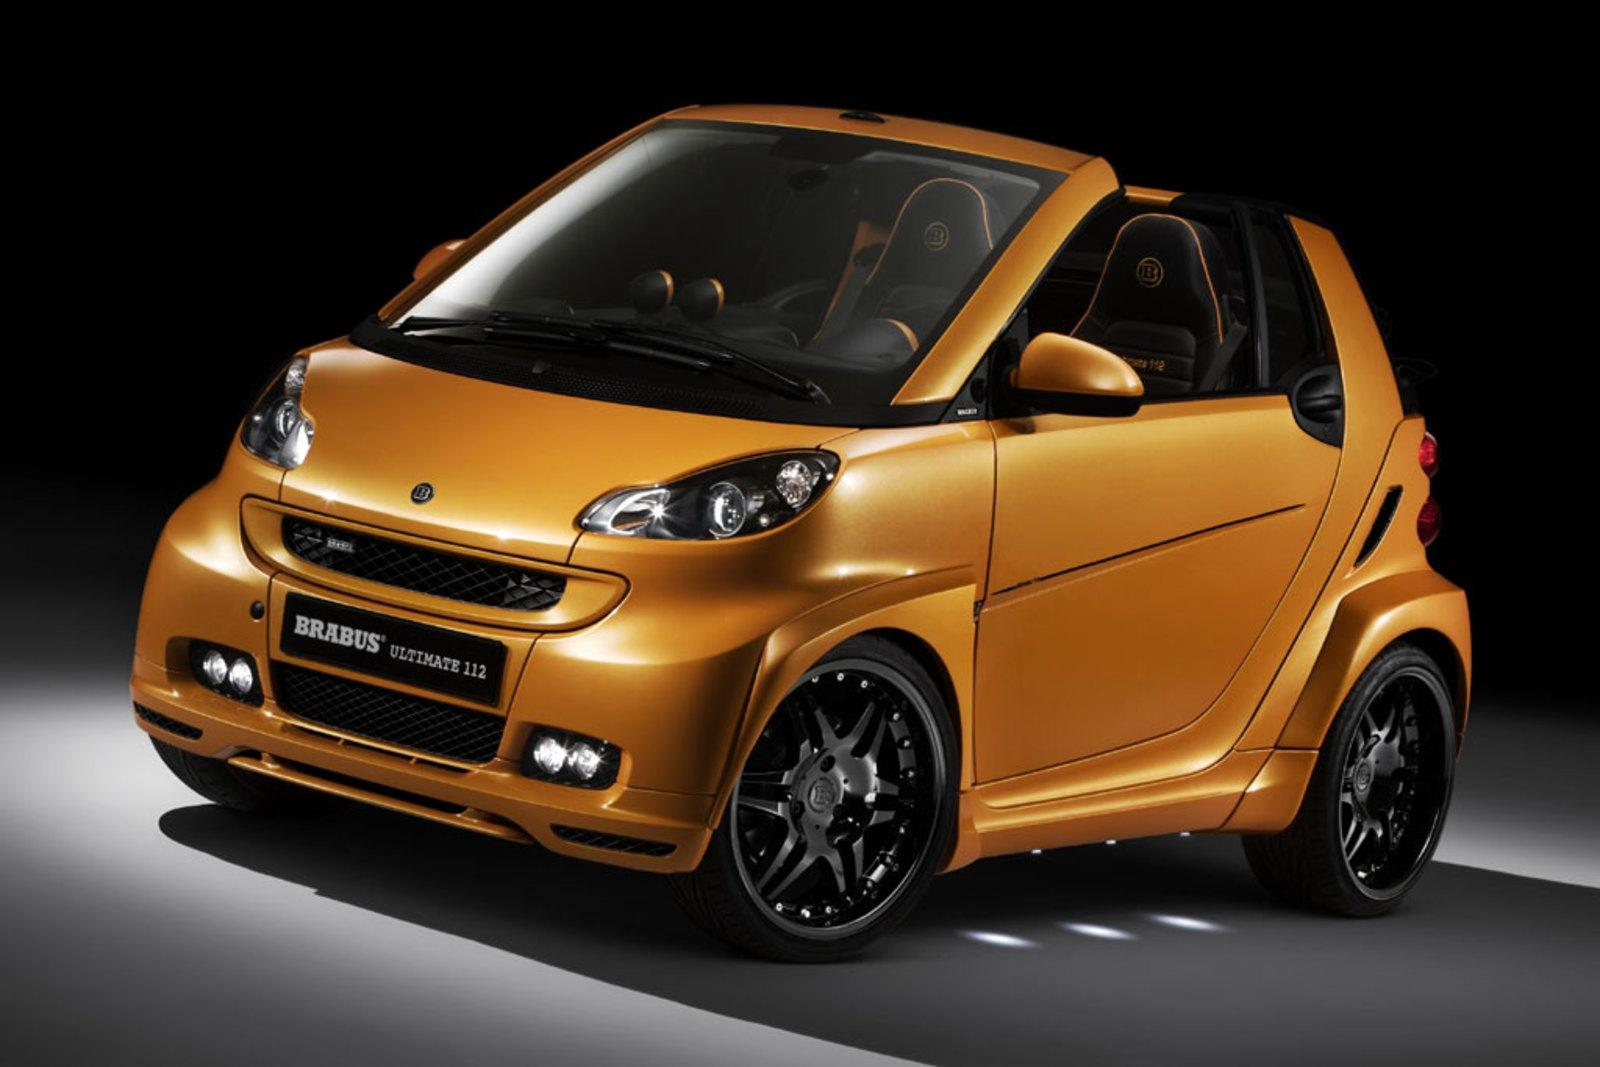 brabus ultimate 112 smart fortwo review top speed. Black Bedroom Furniture Sets. Home Design Ideas